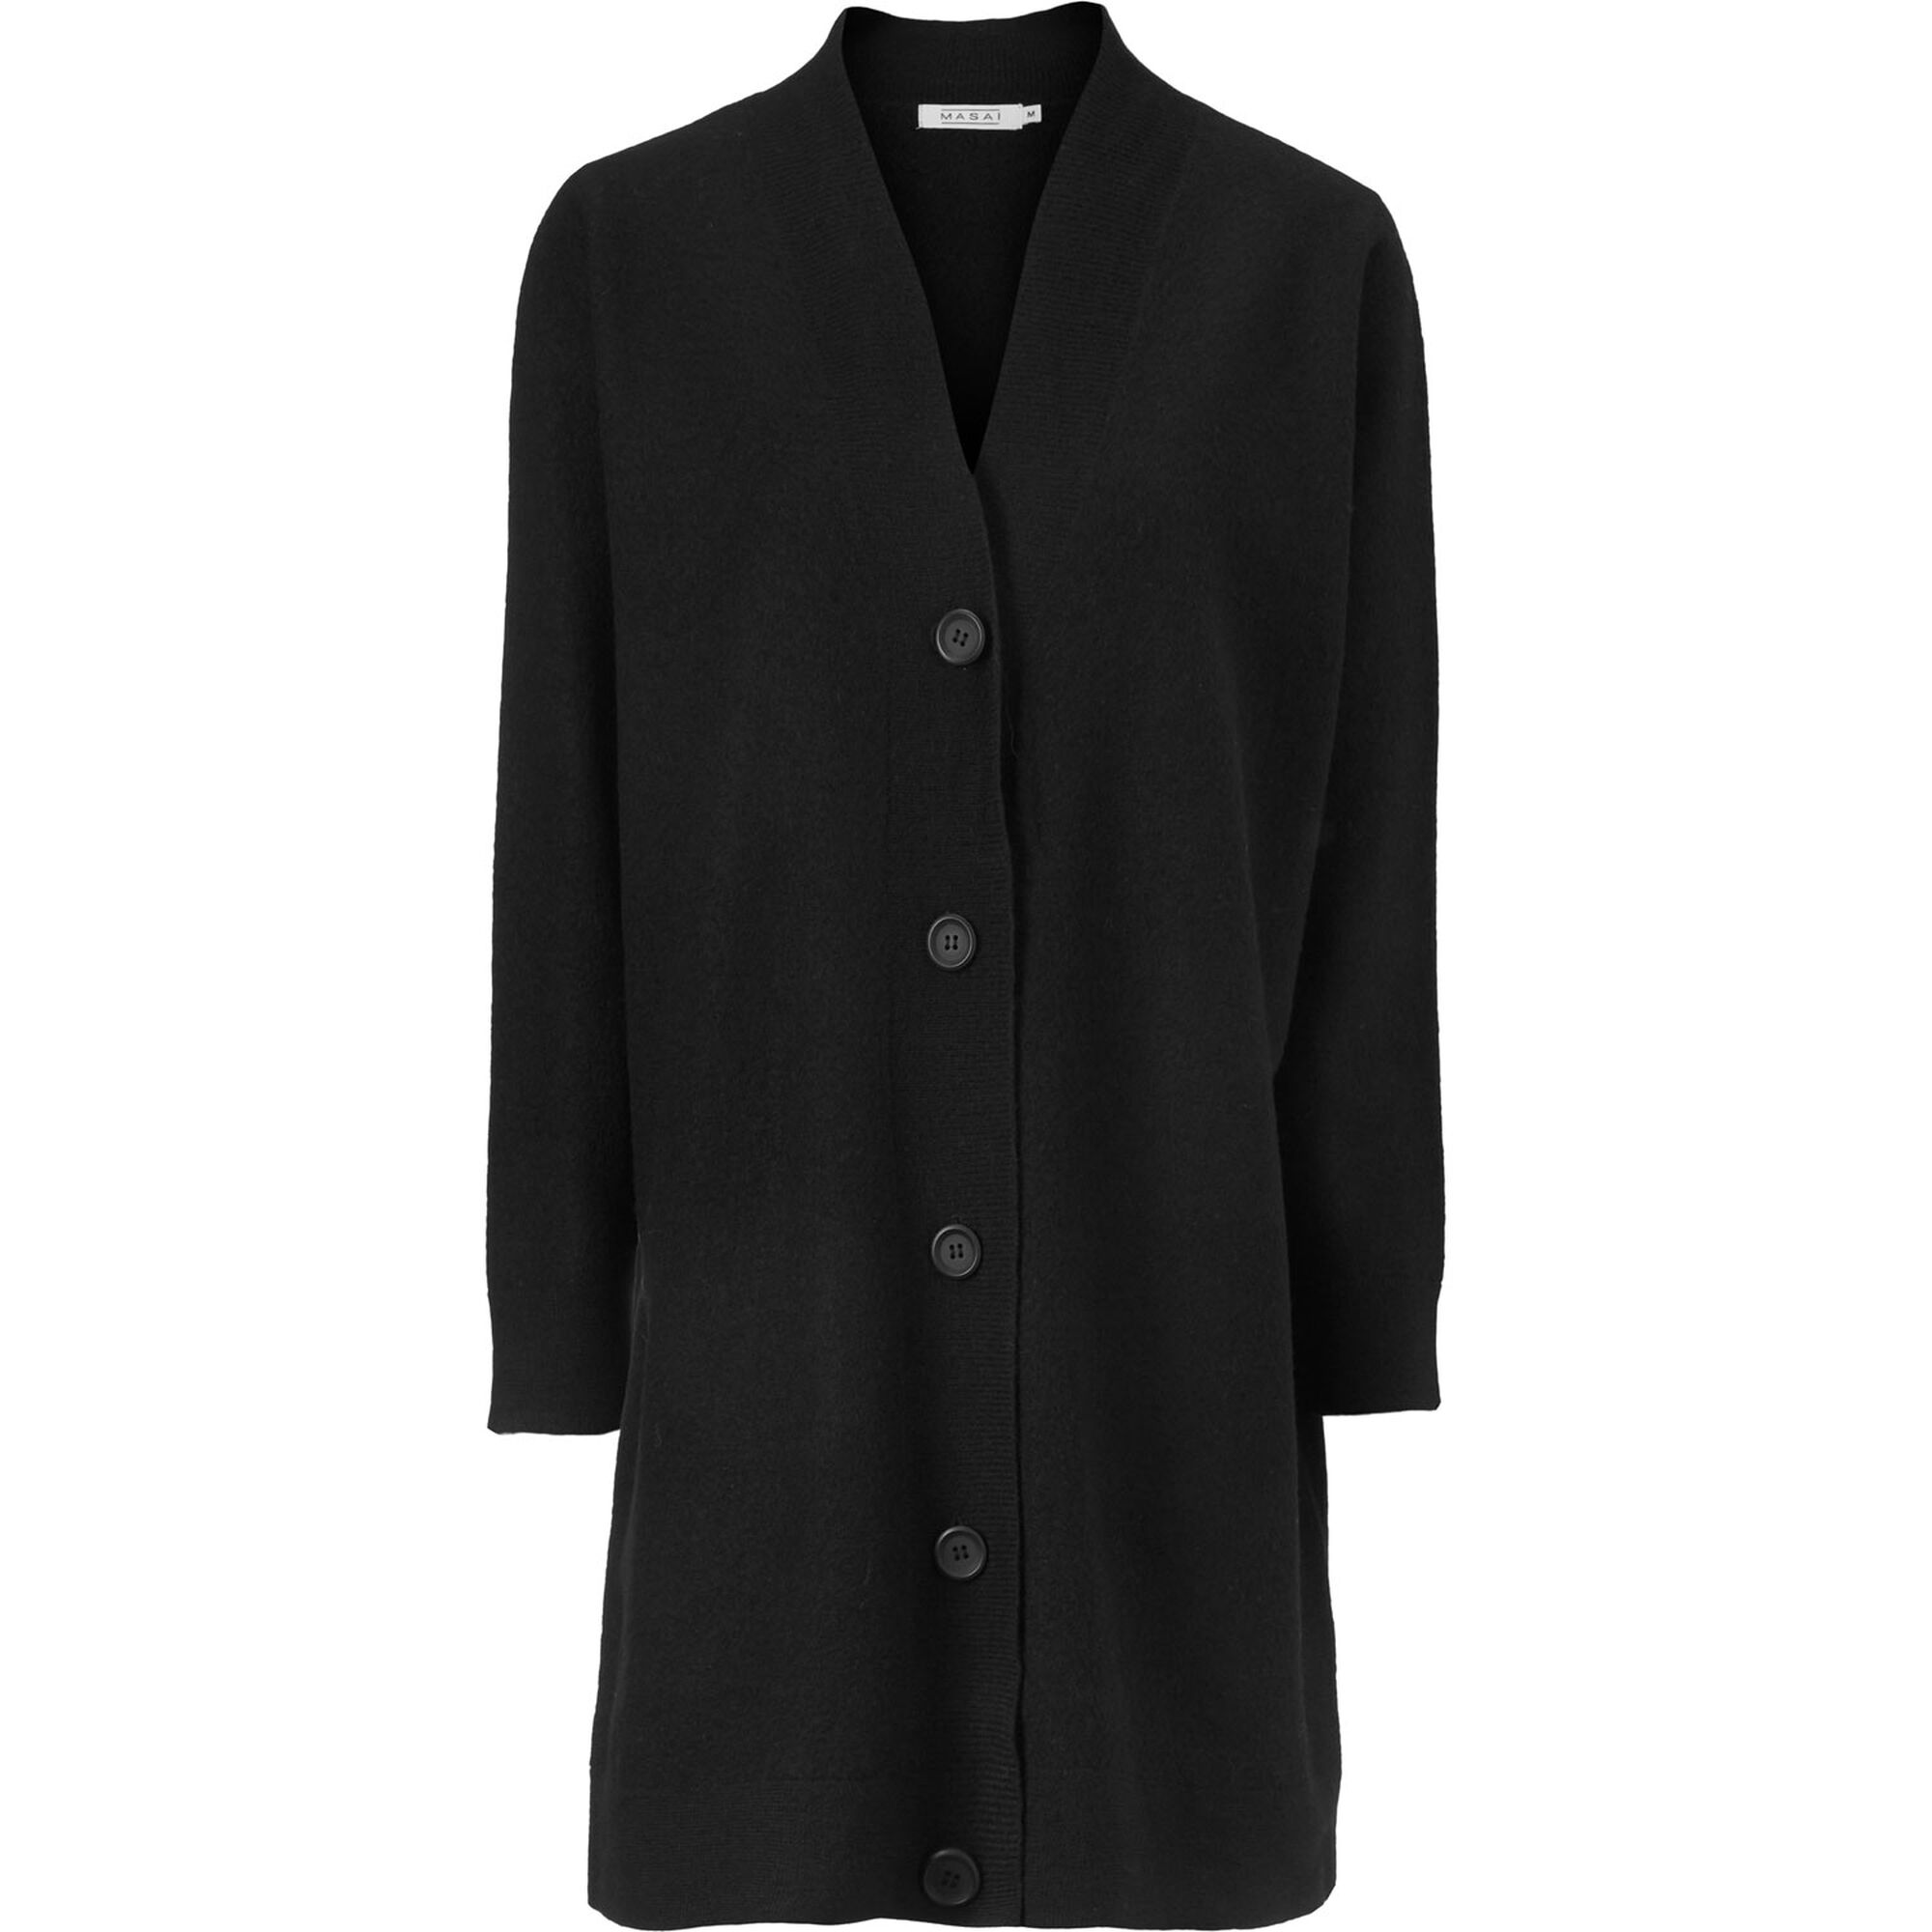 LUCIA CARDIGAN, Black, hi-res